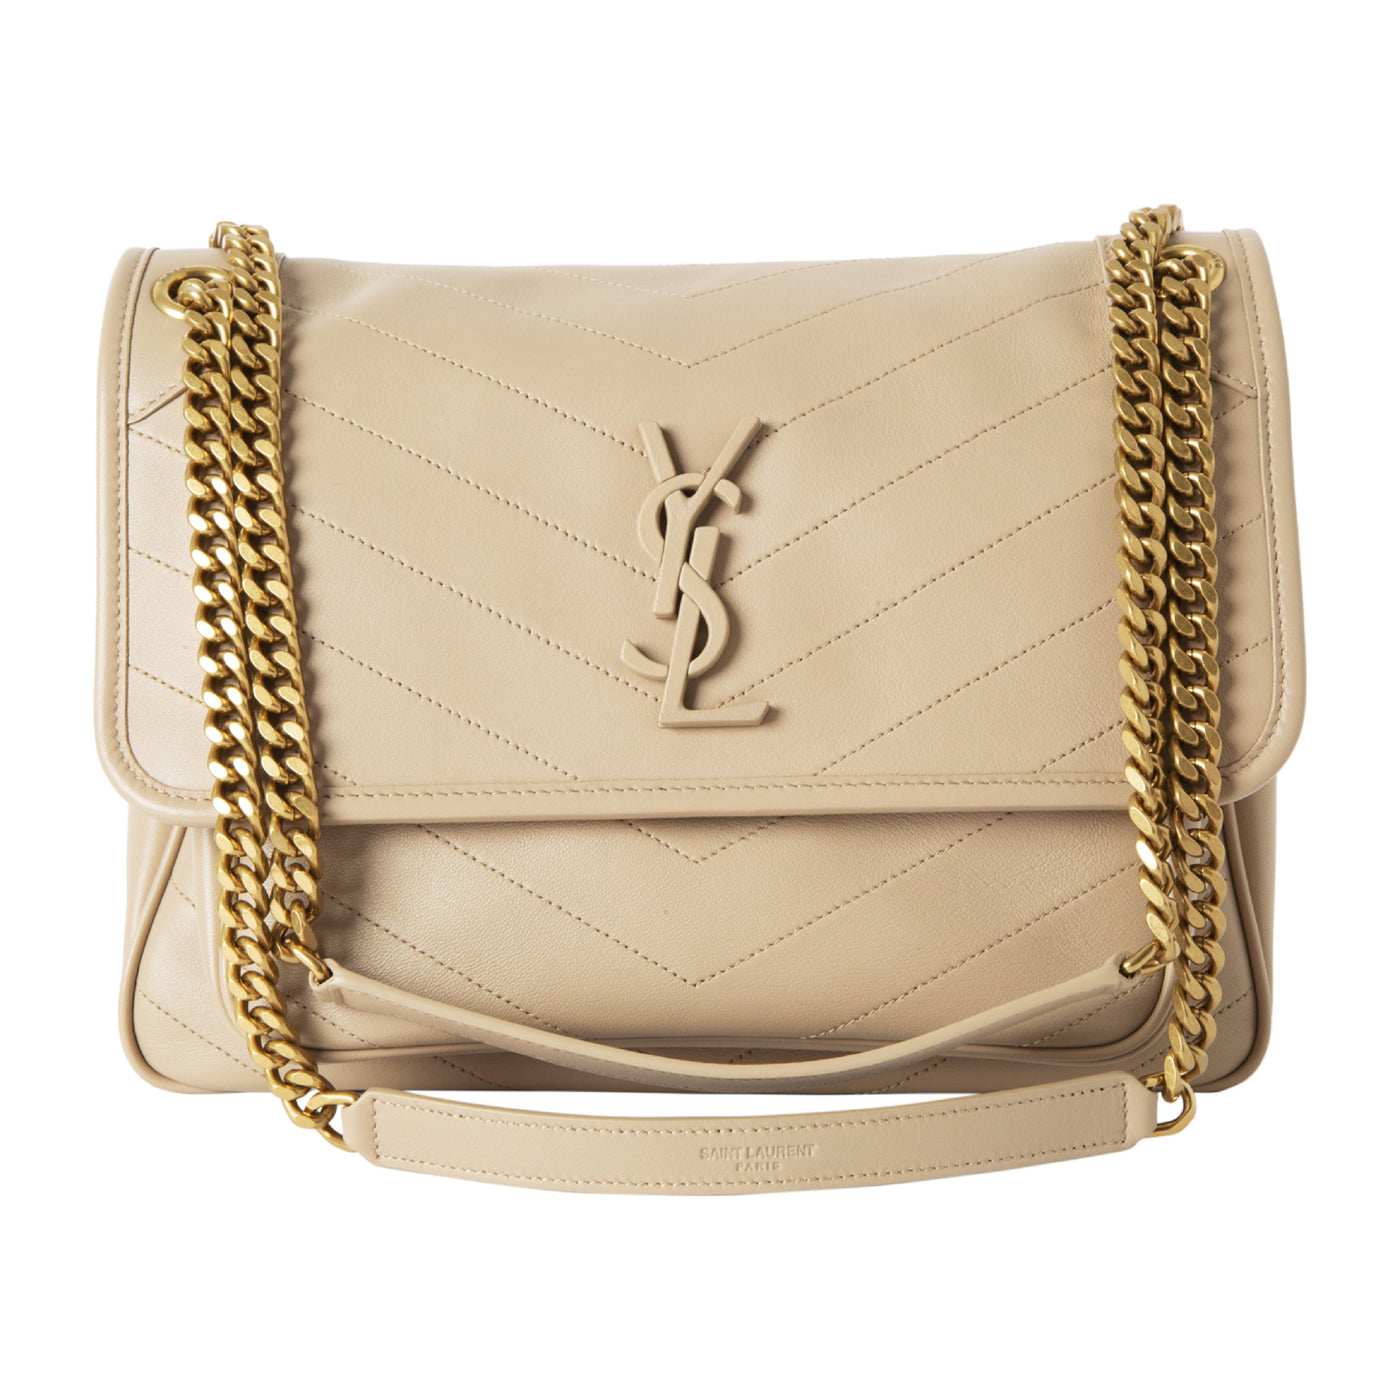 "Load image into Gallery viewer, SAINT LAURENT ""NIKI"" MONOGRAM HANDBAG NEUTRAL"